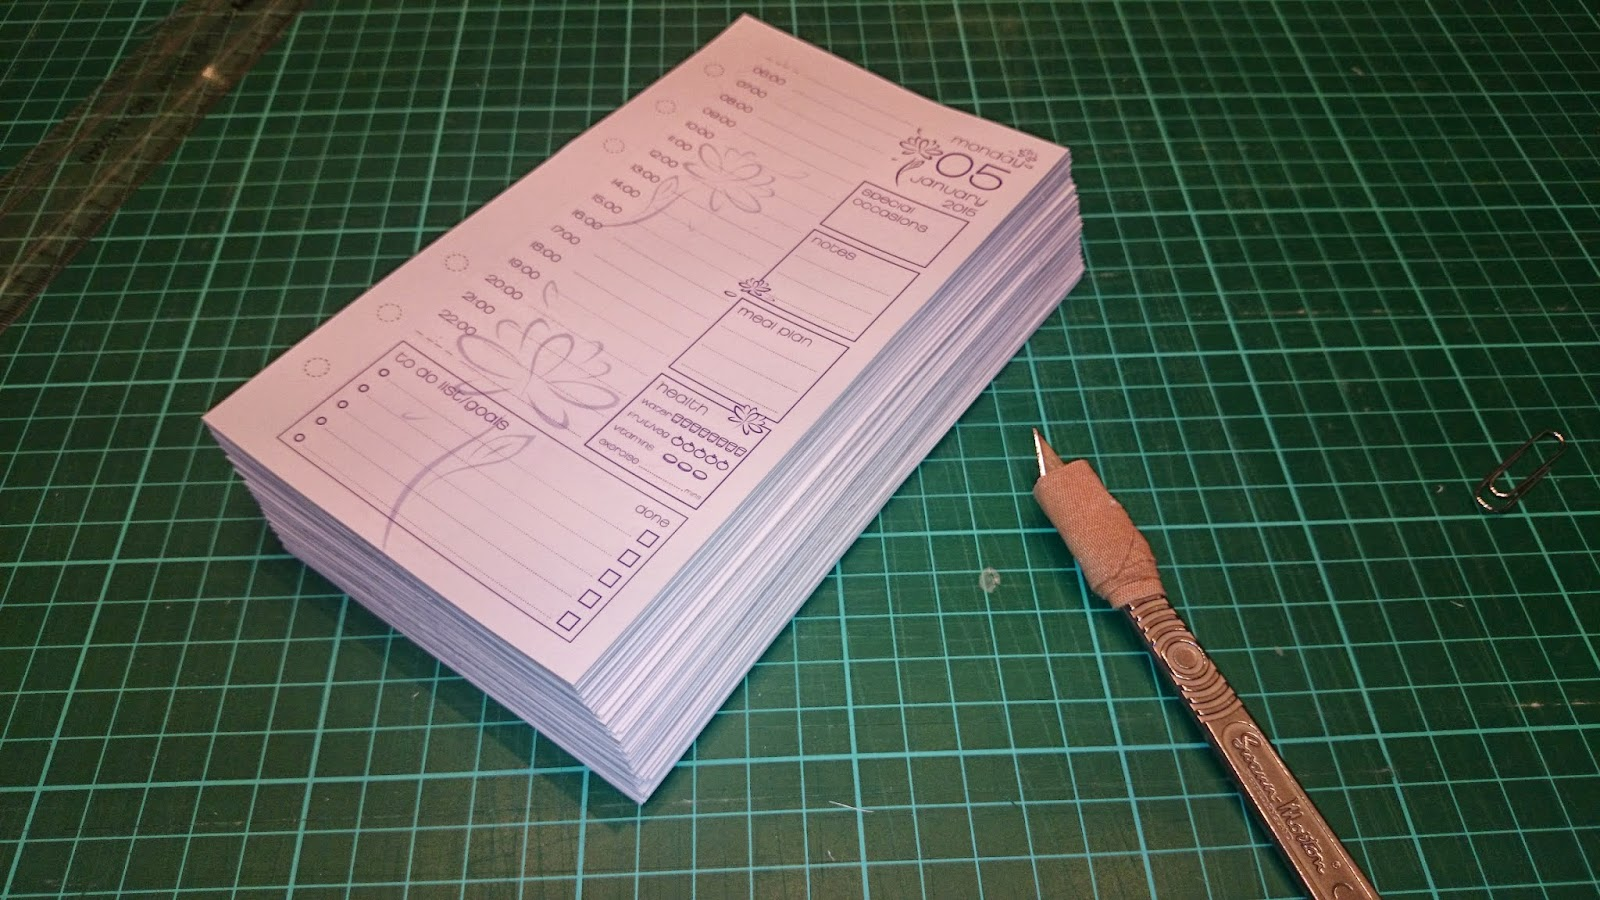 DIY cutting and hole punching filofax planner 2015 diary inserts page a day